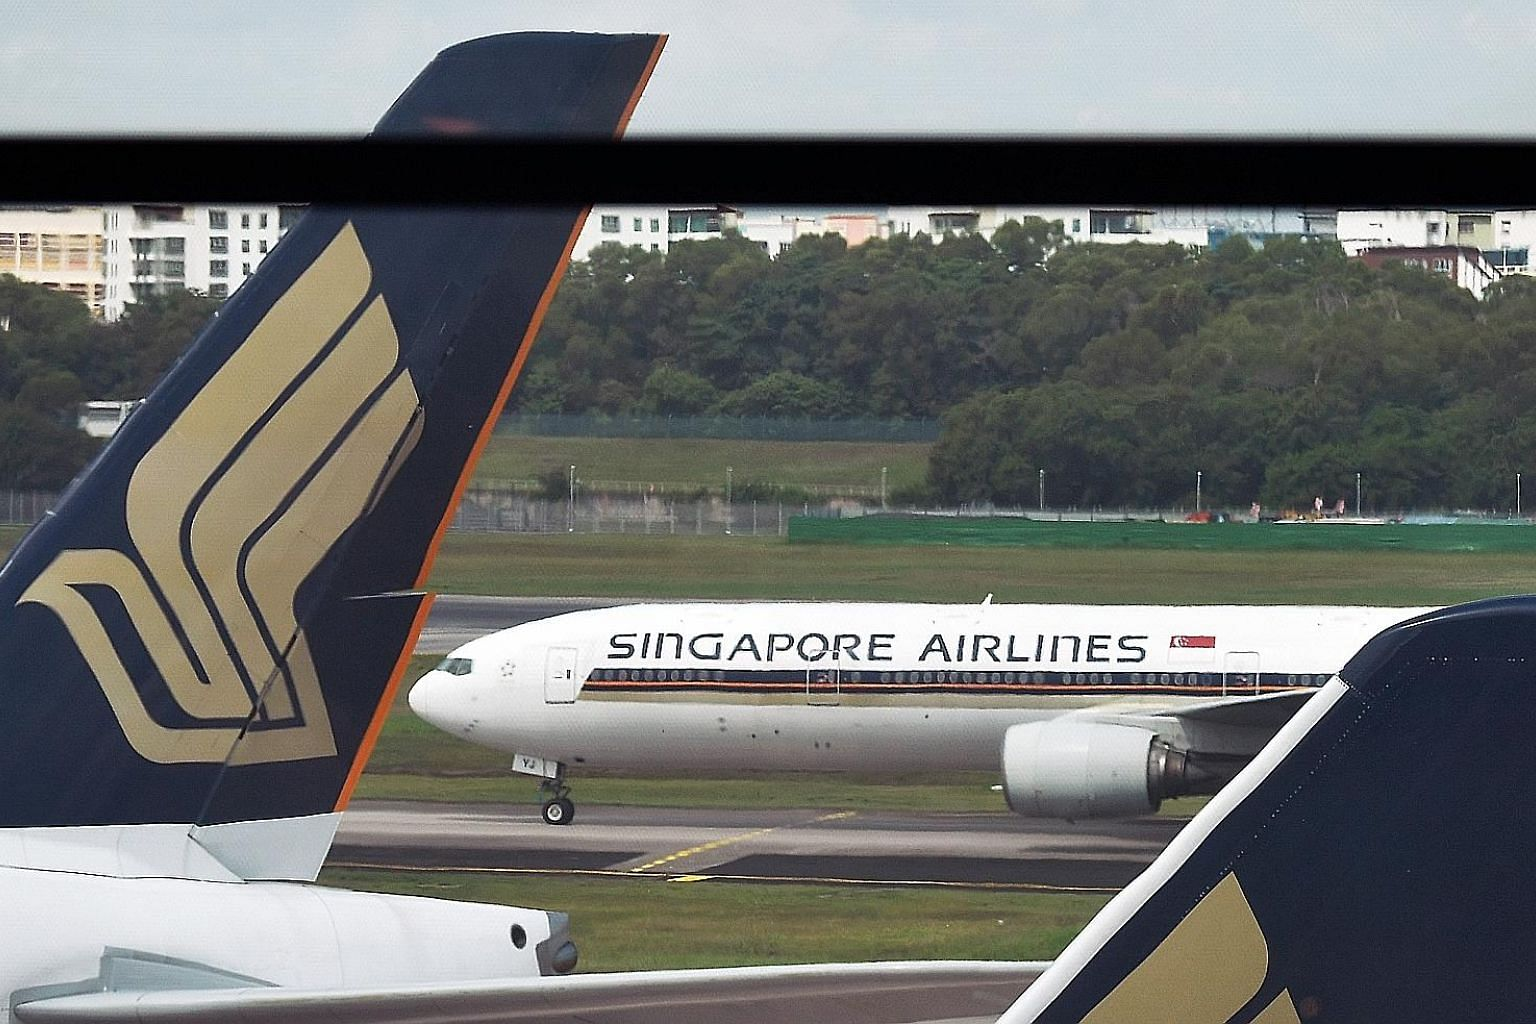 The SIA Group's extensive network - with Singapore Airlines and SilkAir flying to 94 destinations in 34 countries pre-coronavirus - attracts foreign carriers which fly to Singapore so that they can tap the group's connectivity to the rest of the regi